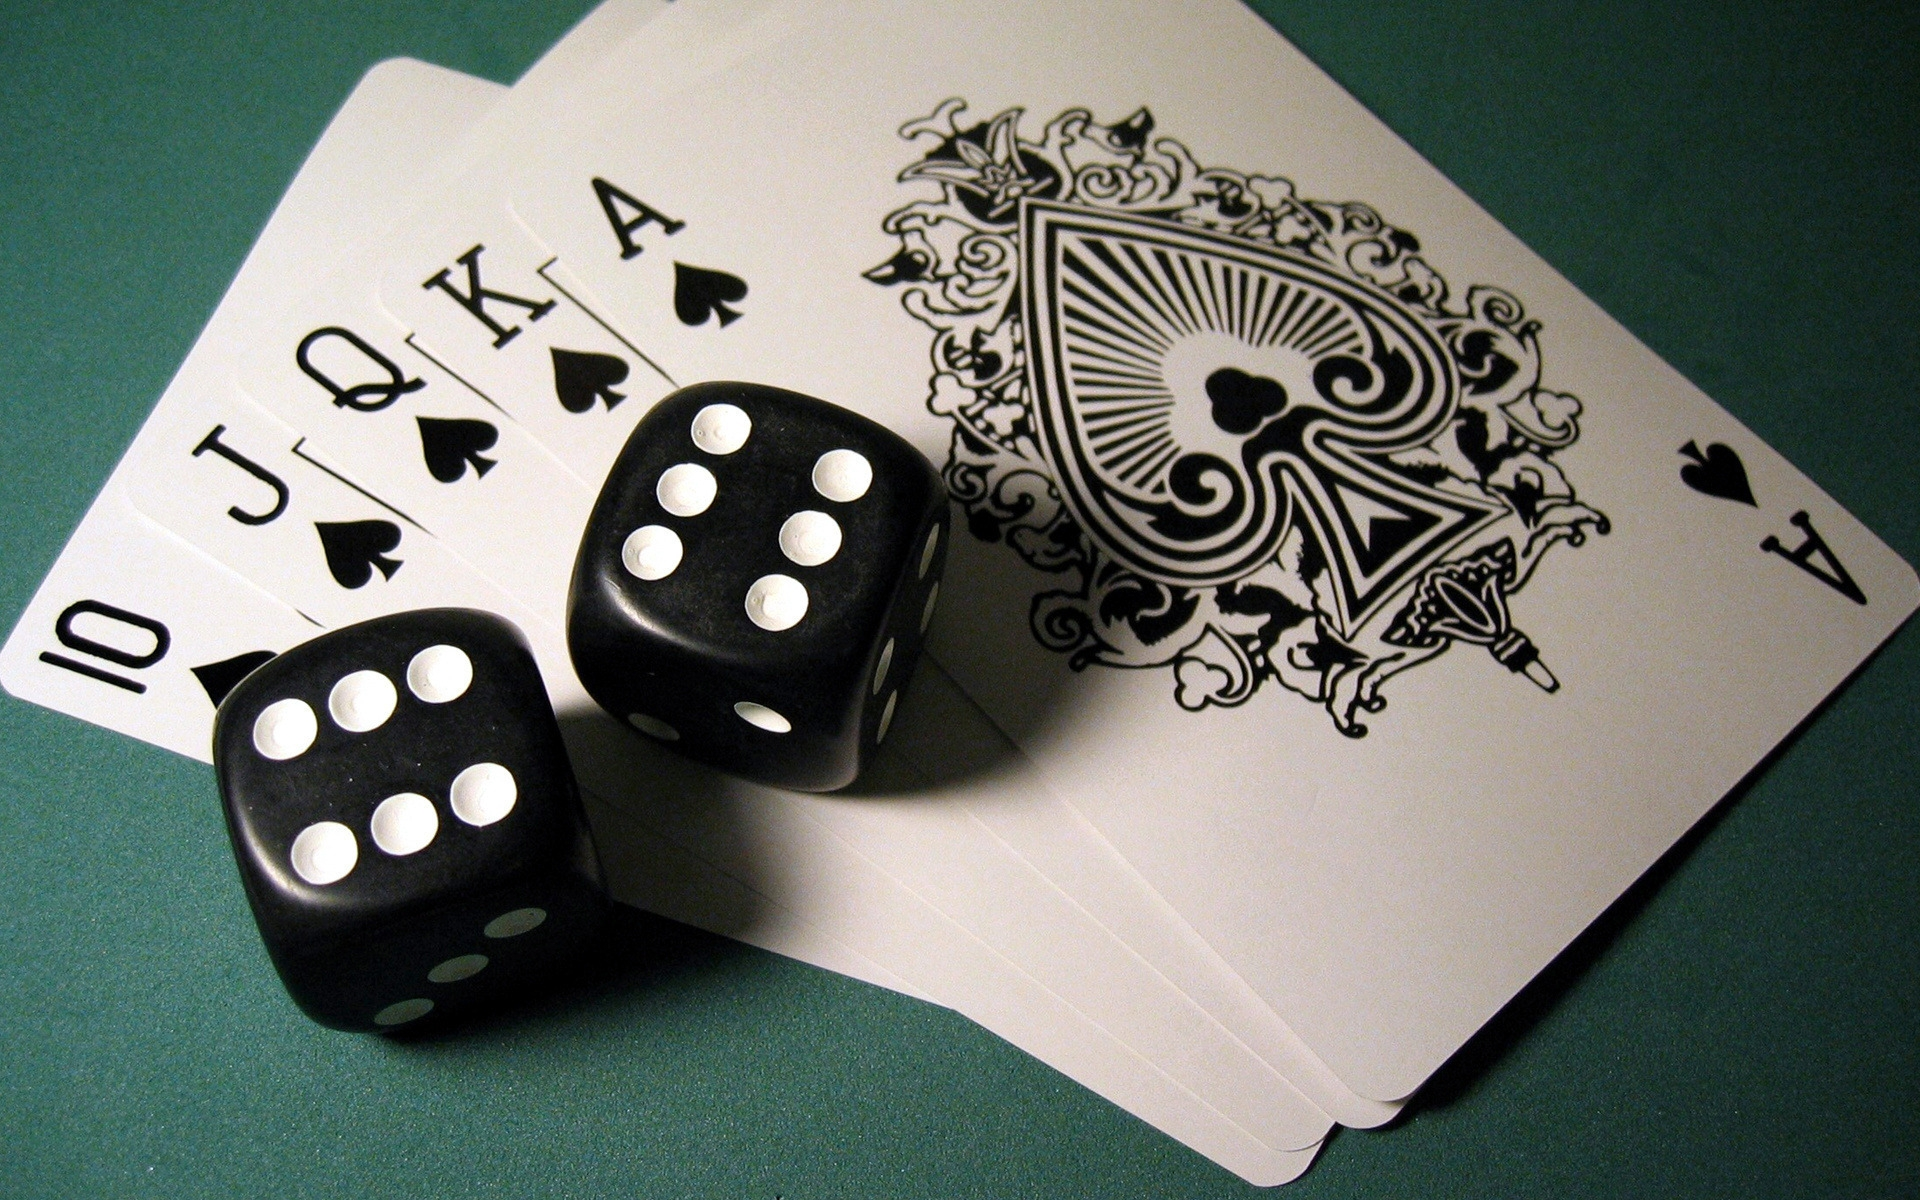 Who Else Needs To Know The Mystery Behind Gambling